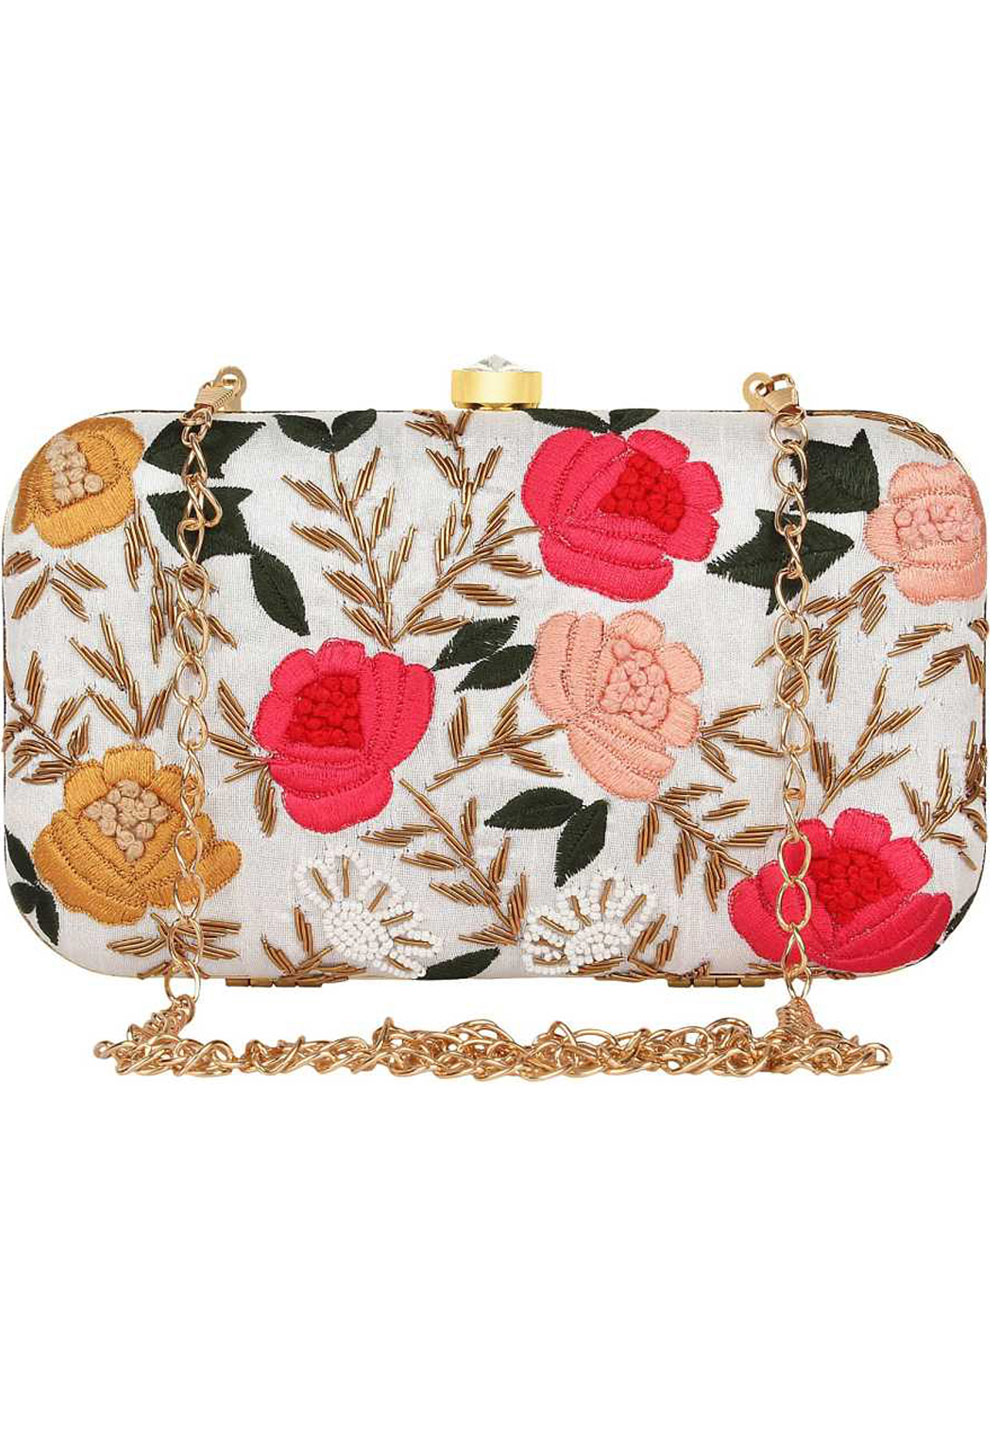 Off White Synthetic Embroidered Clutch 225837